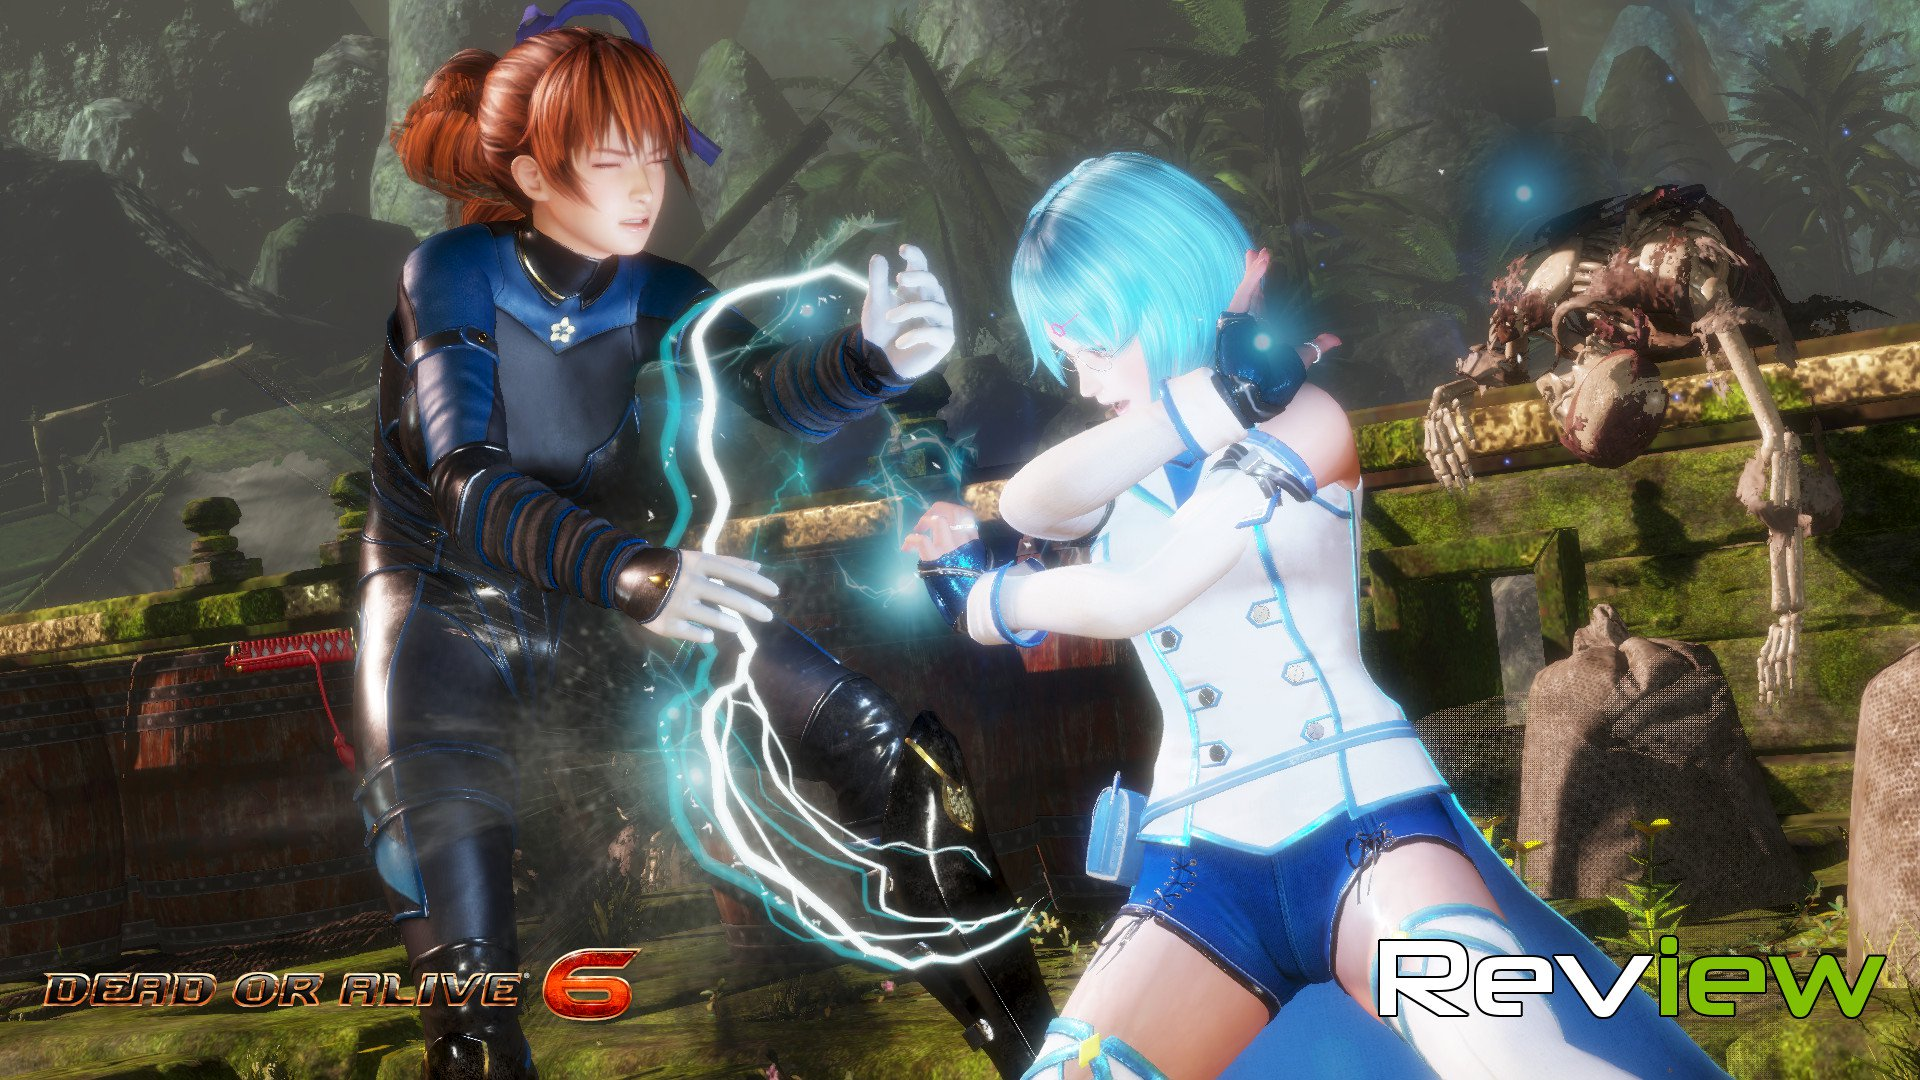 DEAD OR ALIVE 6 Deluxe Edition Xbox One key(Rus+VPN) 2019